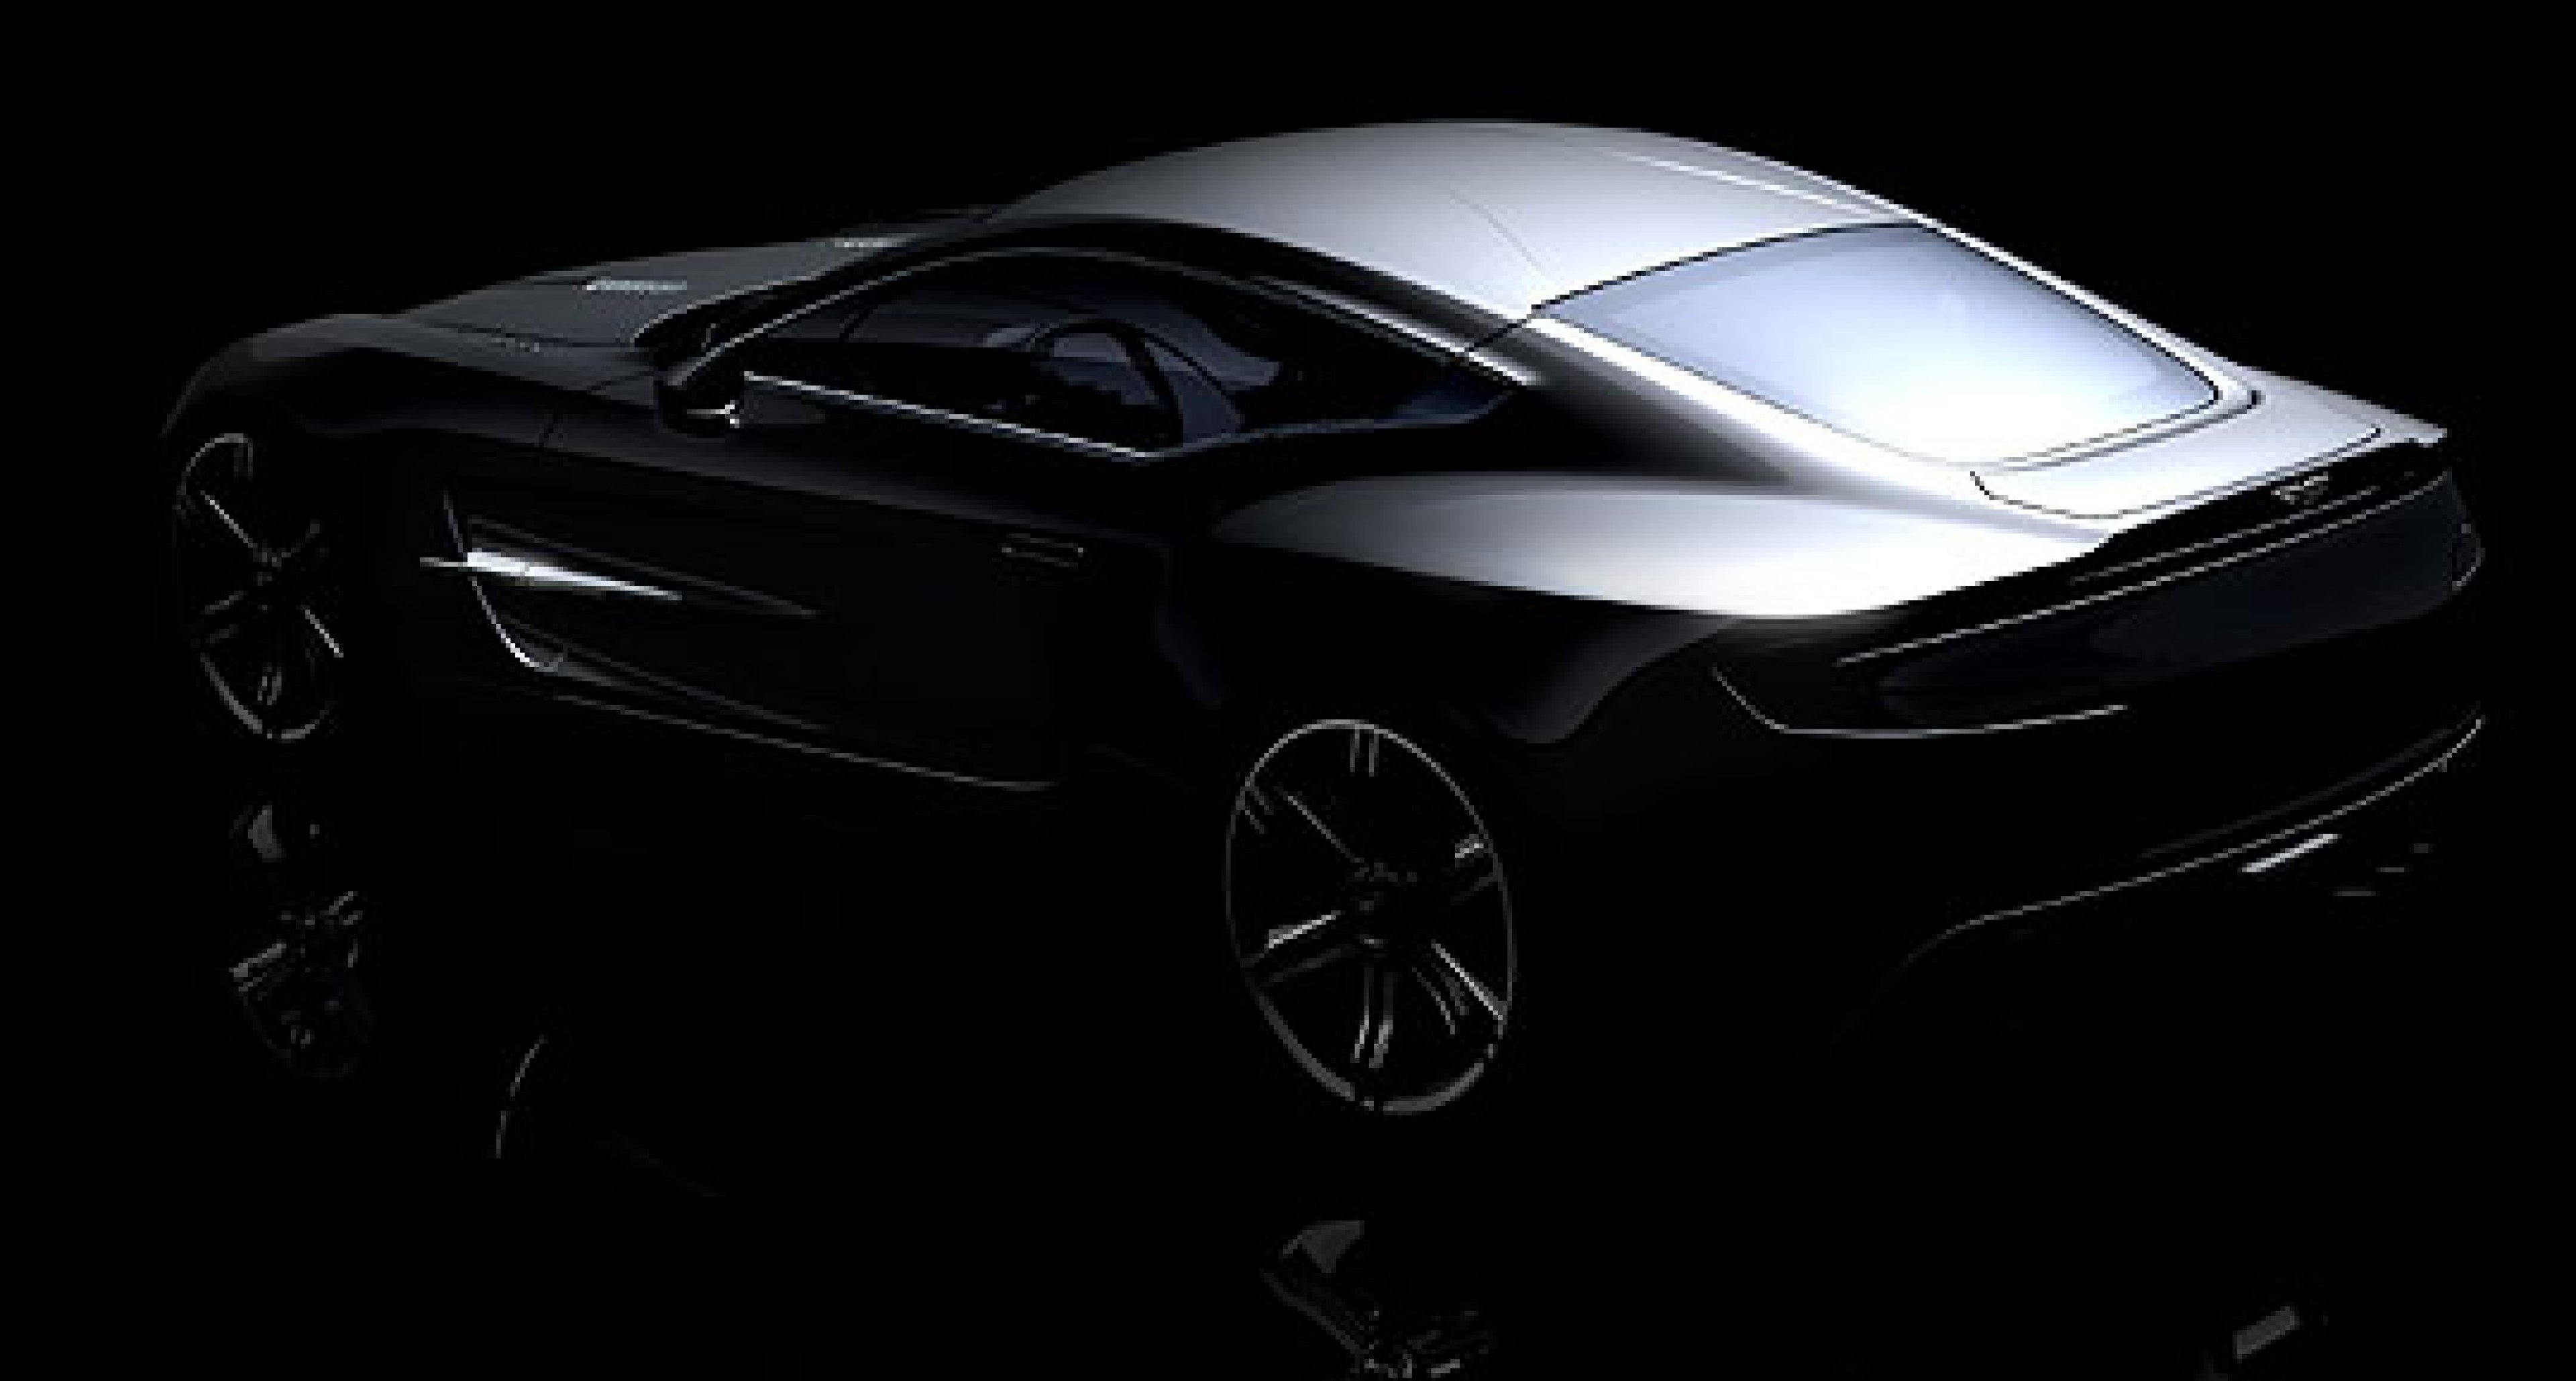 Aston Martin Project One-77: Further Photo Revealed - Surprise Appearance at Paris Show